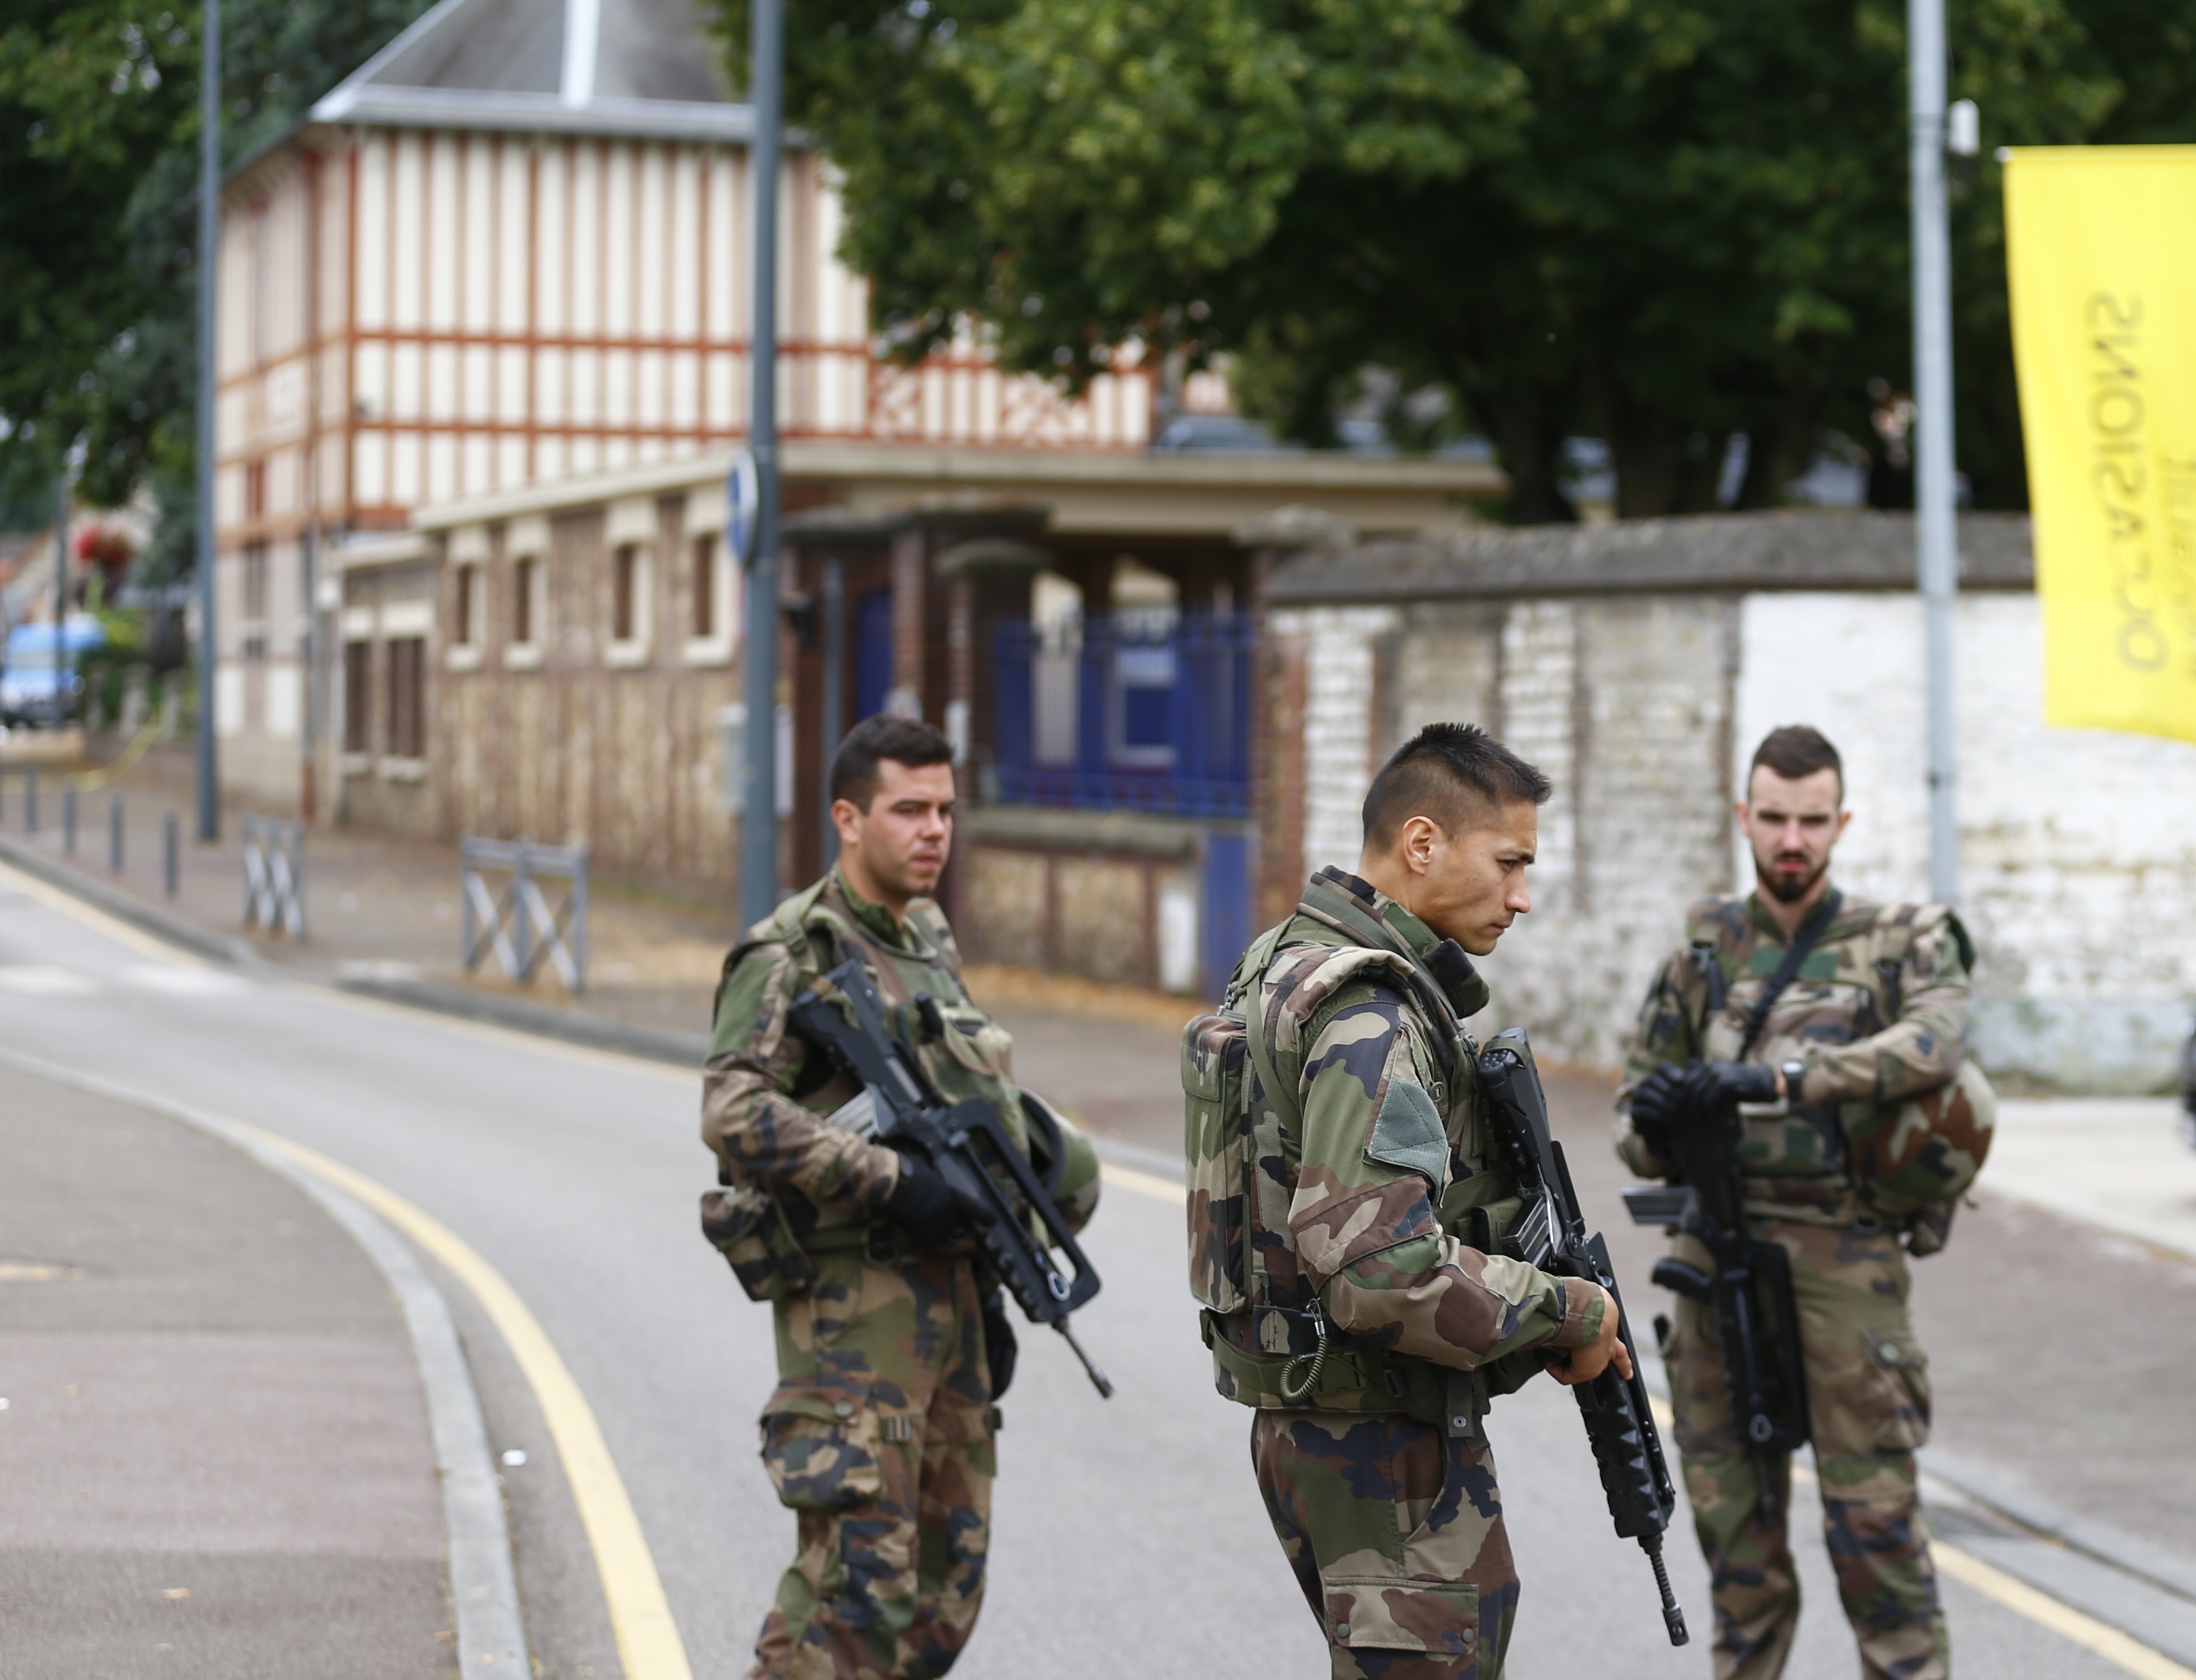 French soldiers stand guard as they prevent  the access to the scene of an attack in Saint Etienne du Rouvray, Normandy, France on July 26, 2016.